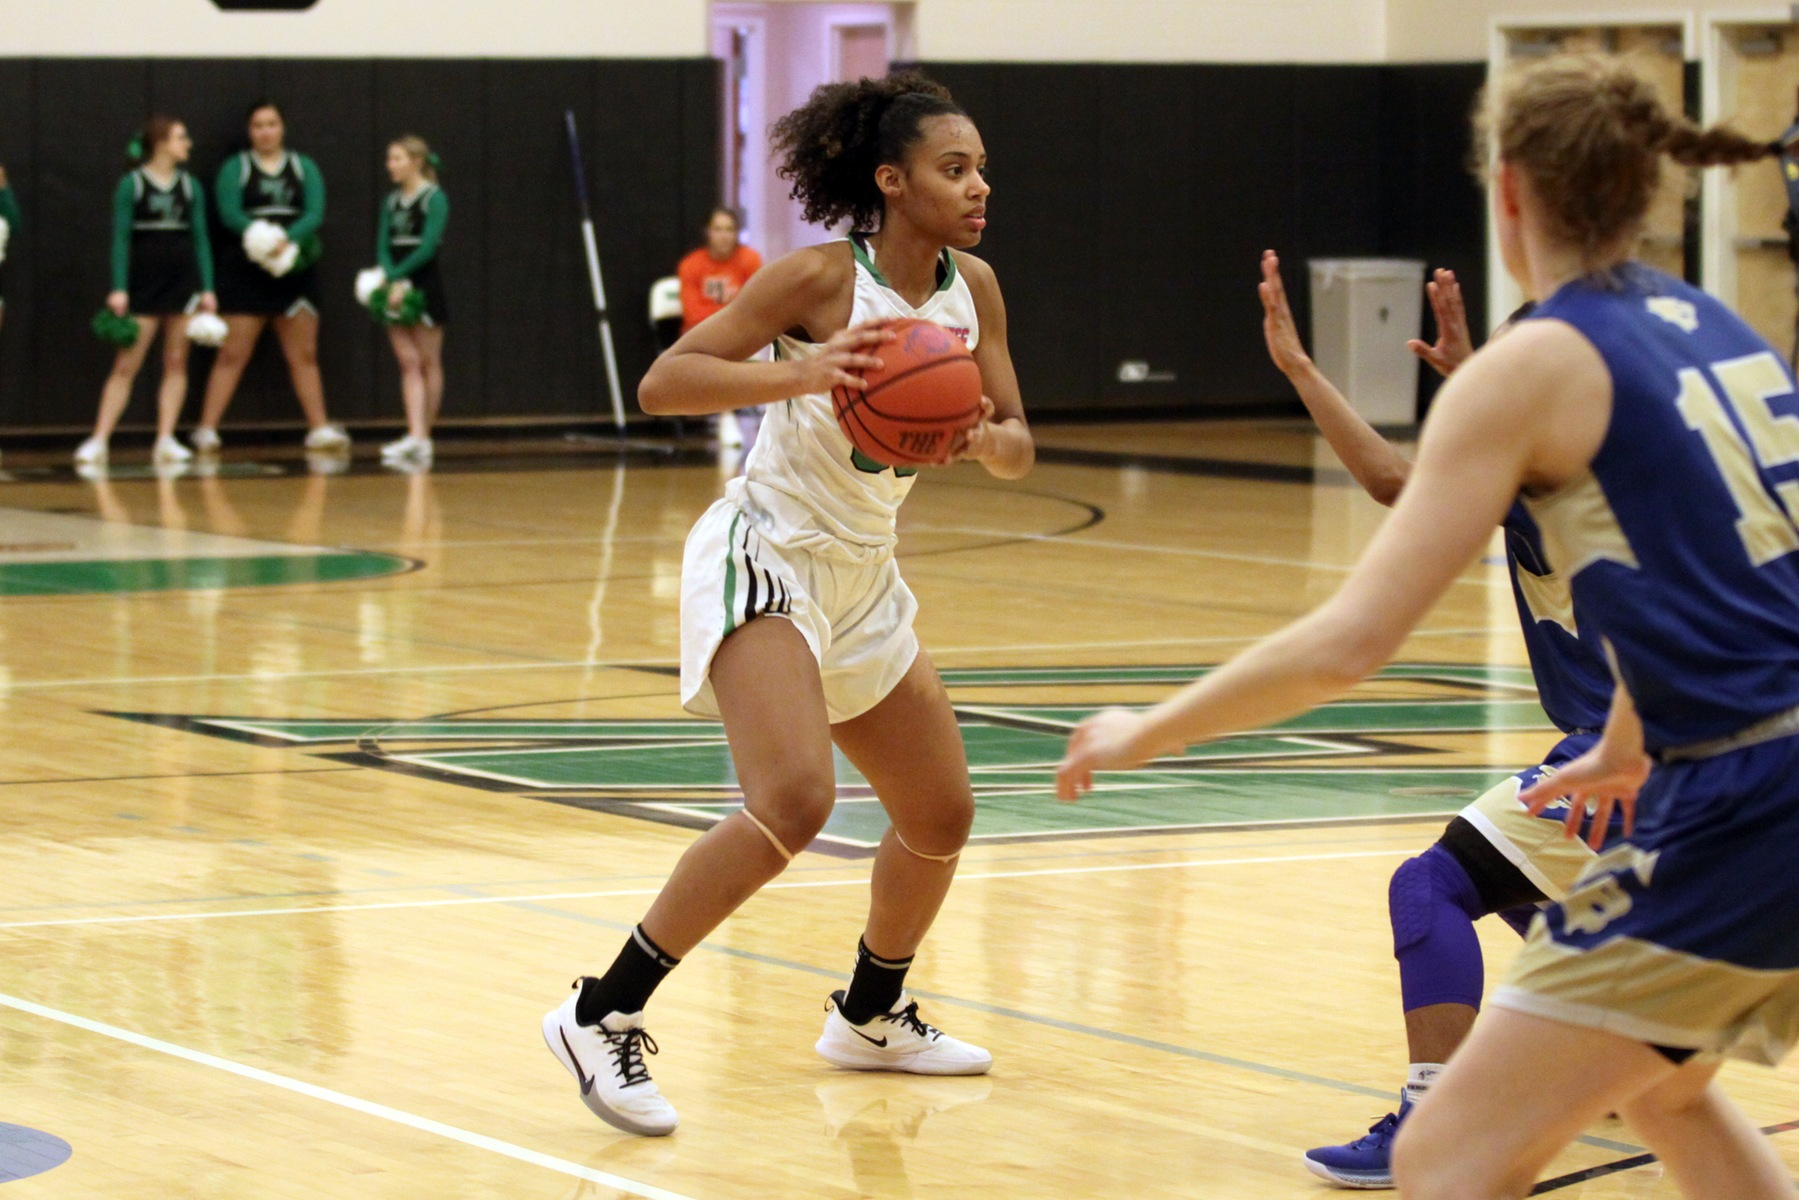 File photo of Jadyn Whitsitt who led the Wildcats with 15 points, 4 rebounds, and 4 assists at Chestnut Hill. Copyright 2020; Wilmington University. All rights reserved. Photo by Mary Kate Rumbaugh. January 8, 2020 vs. Georgian Court.